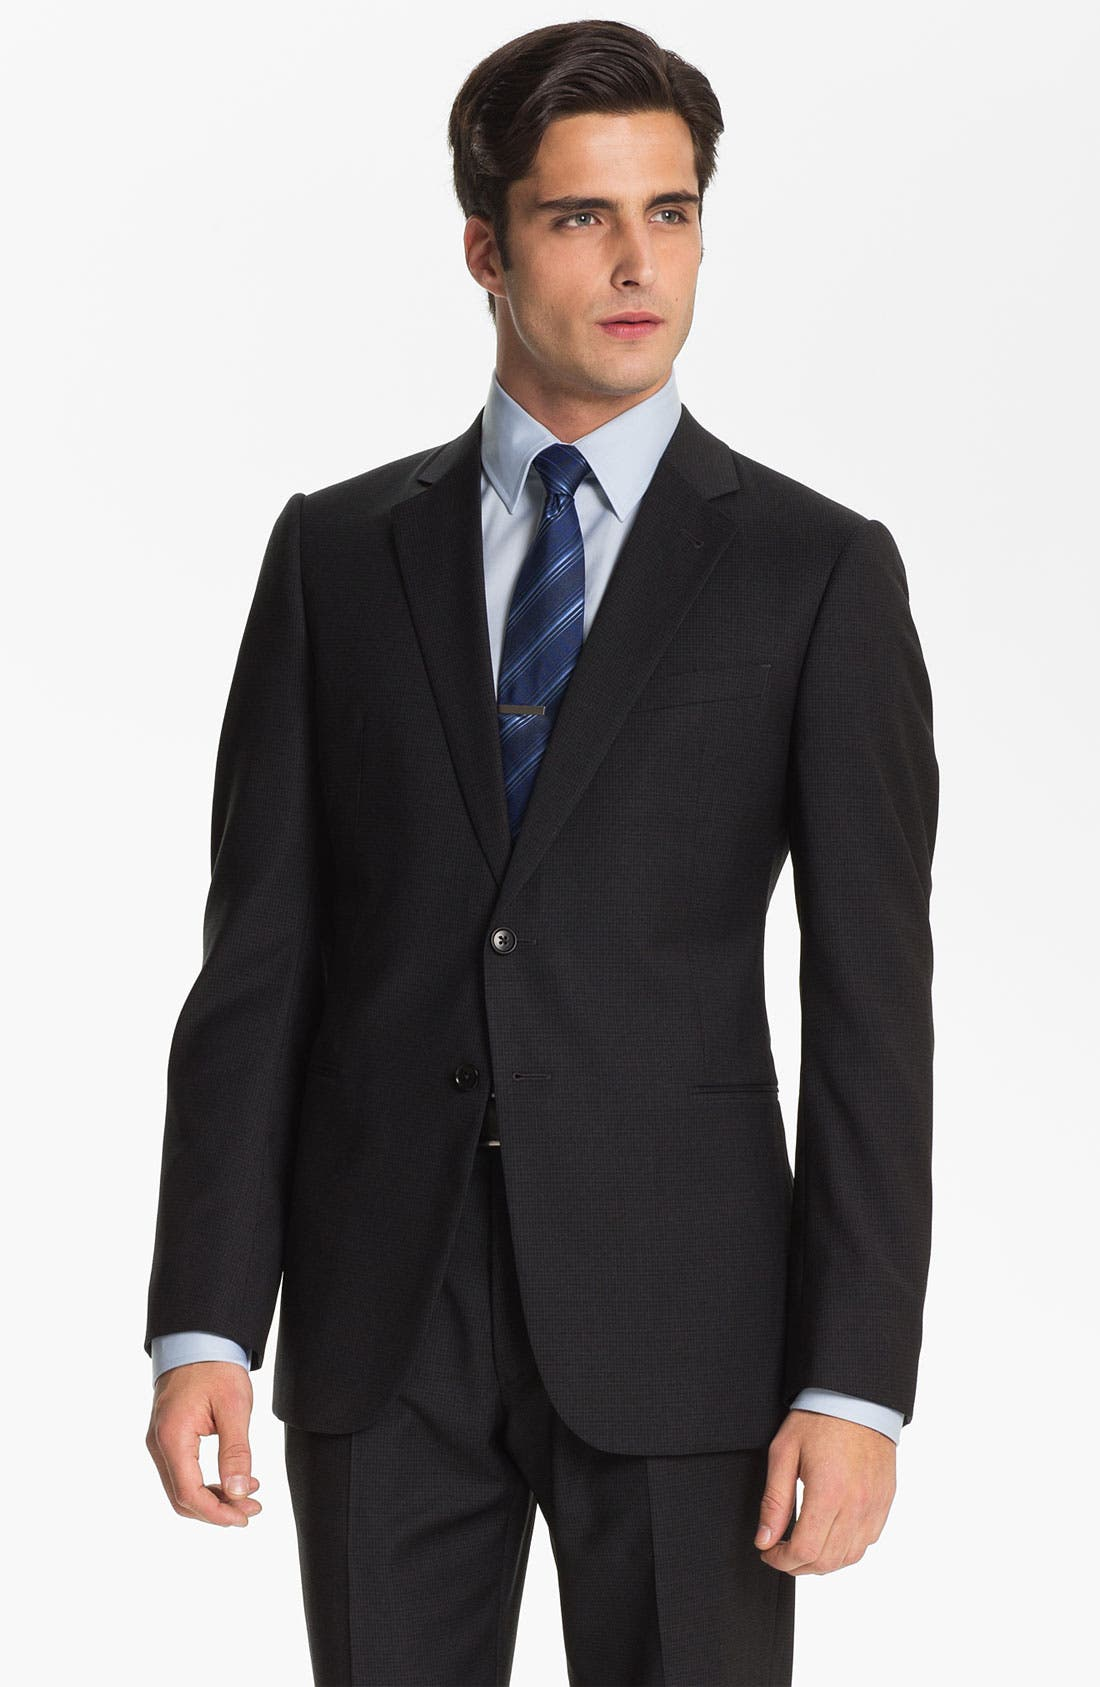 Alternate Image 1 Selected - Armani Collezioni Trim Fit Wool Suit